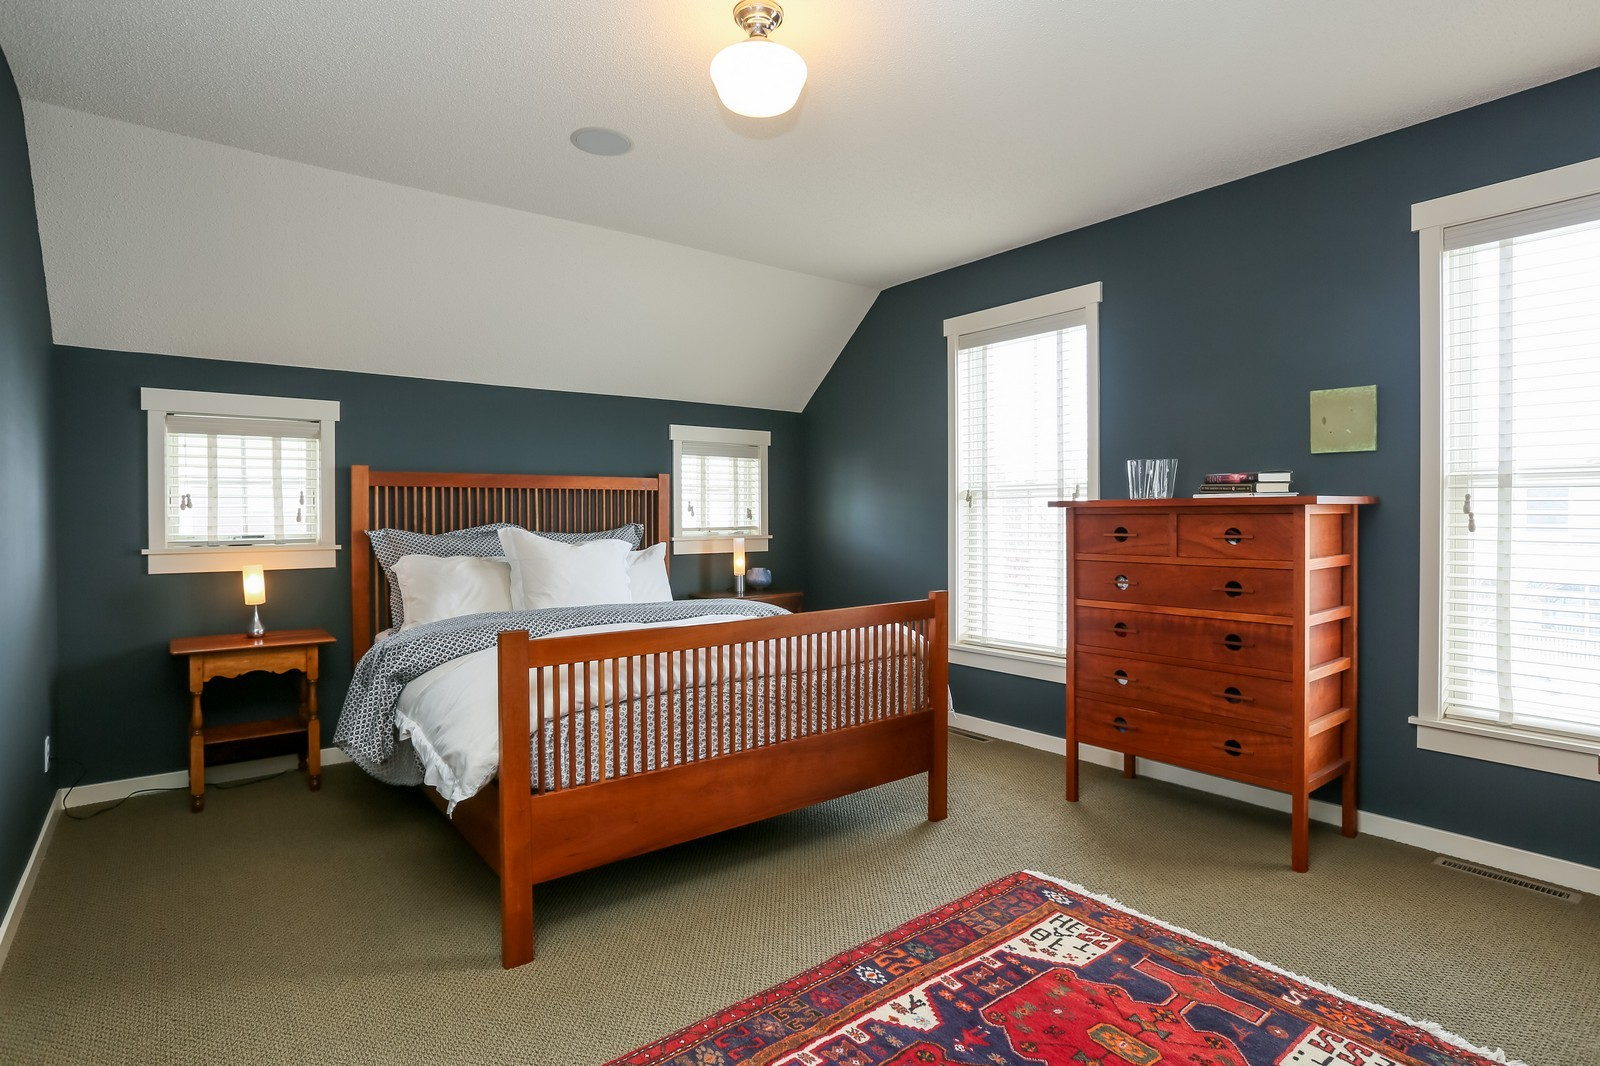 Real Estate Photography - 170 Rutherford Rd, Stillwater, MN, 55082 - Master Bedroom